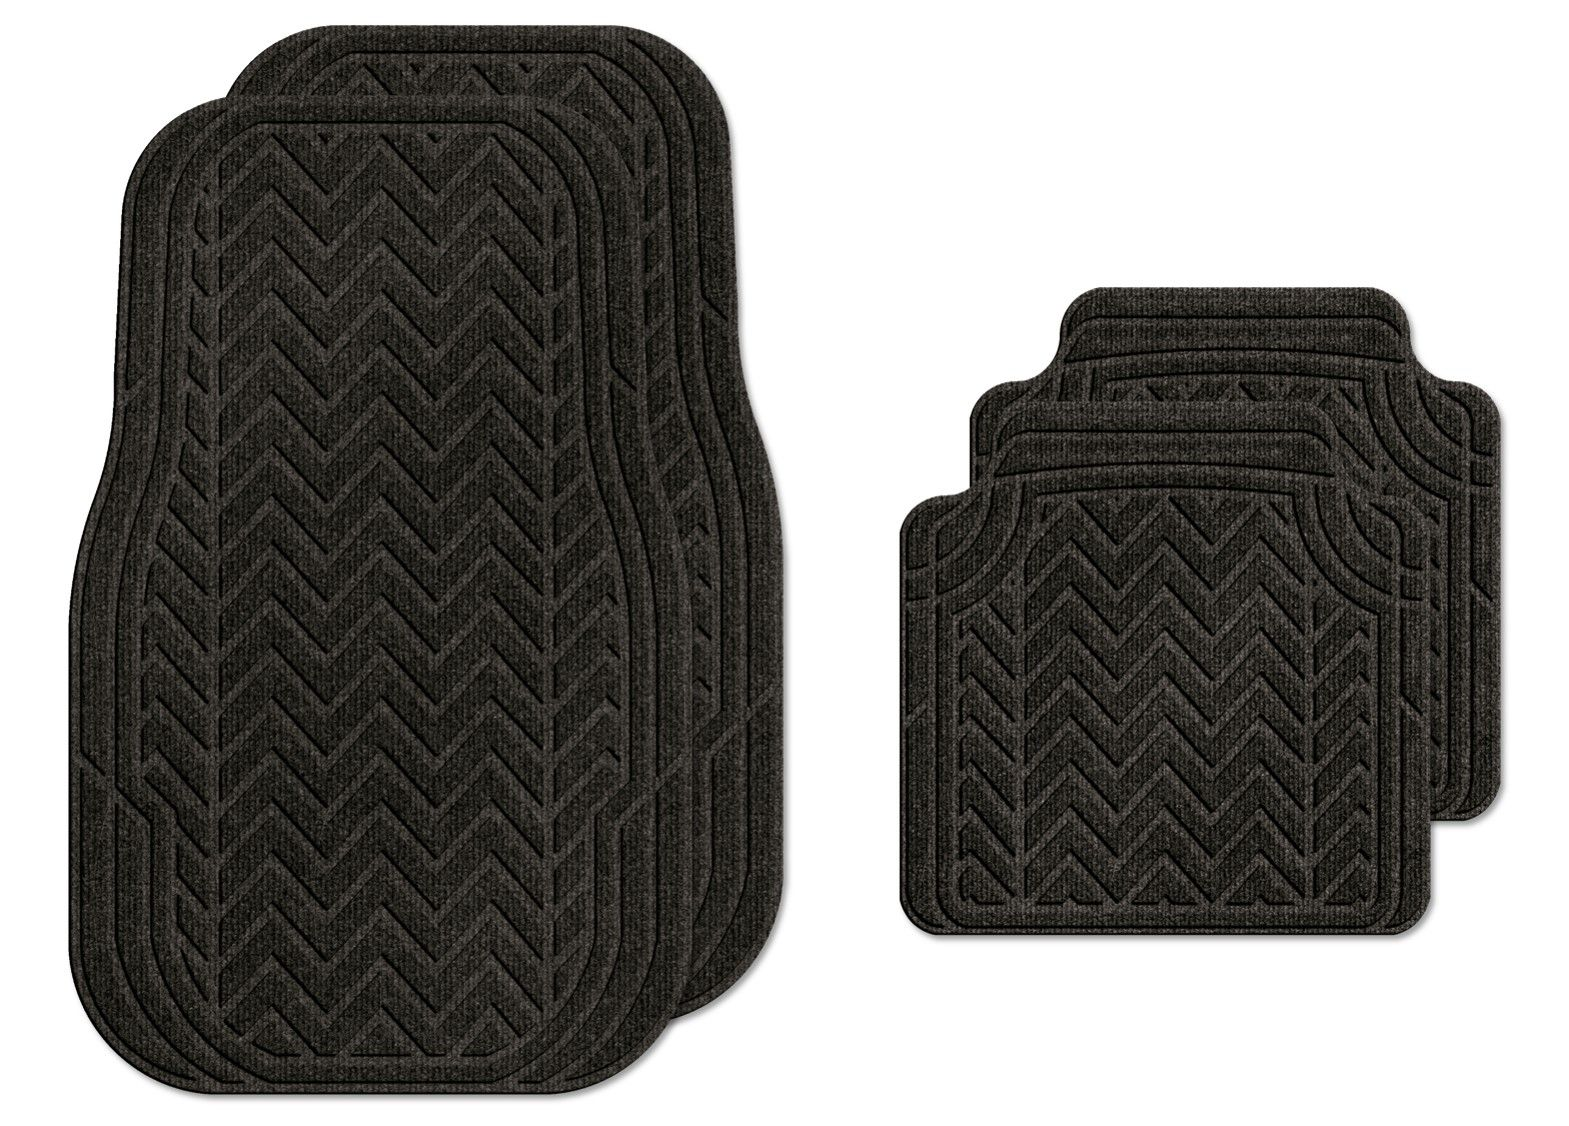 Textrel Machine Washable Car Mat Textrel S Waterhog Product Is Manufactured With The Most Absorbent Materials Protecting Your Ve Chevron Car Mats Chevron Car